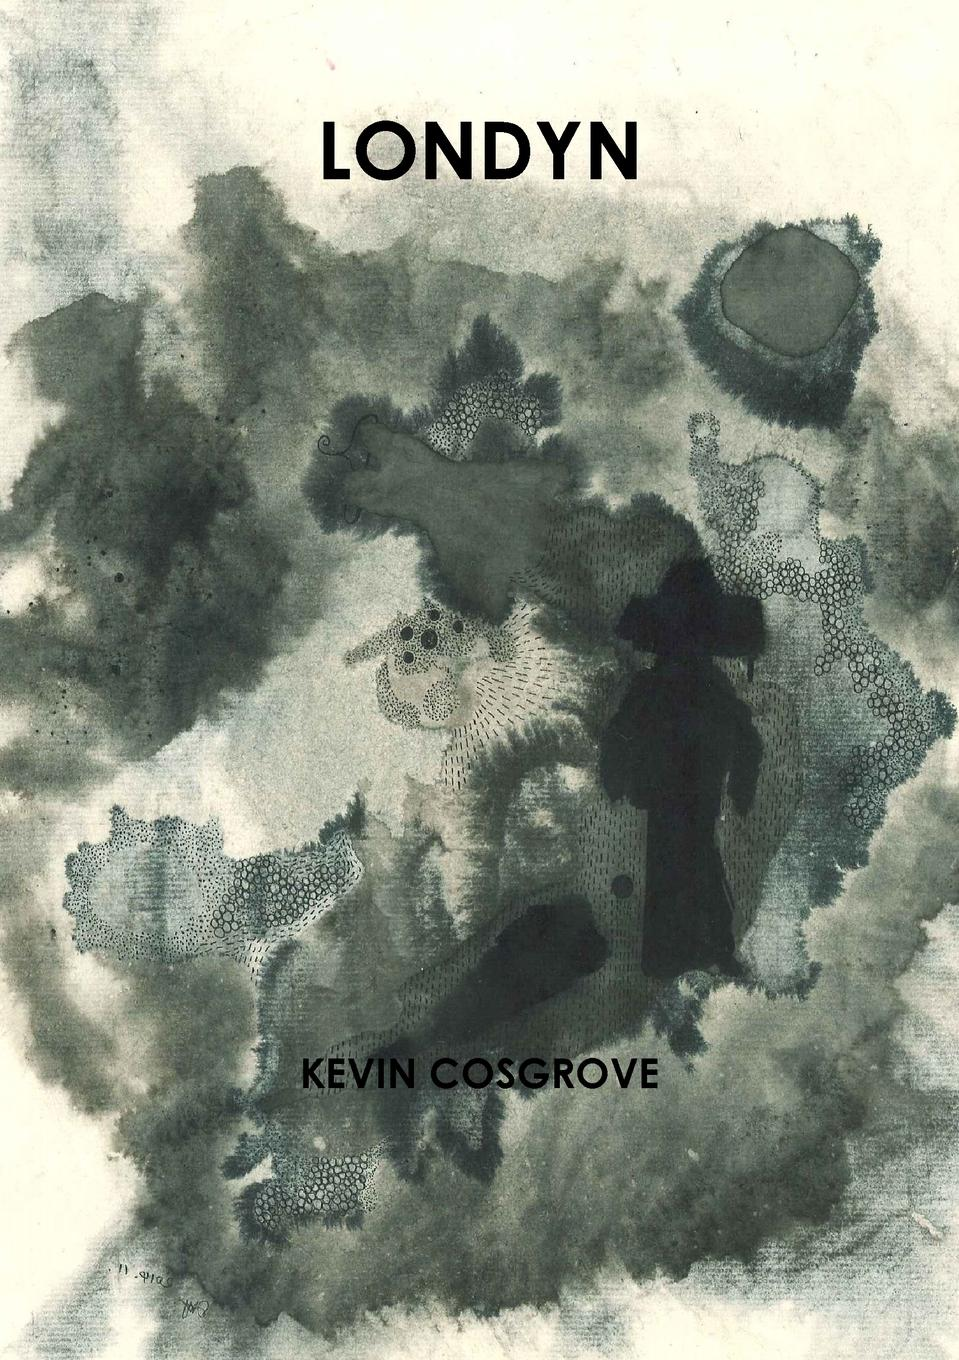 Kevin Cosgrove Londyn a collection of astronomy articles by frank schlesinger